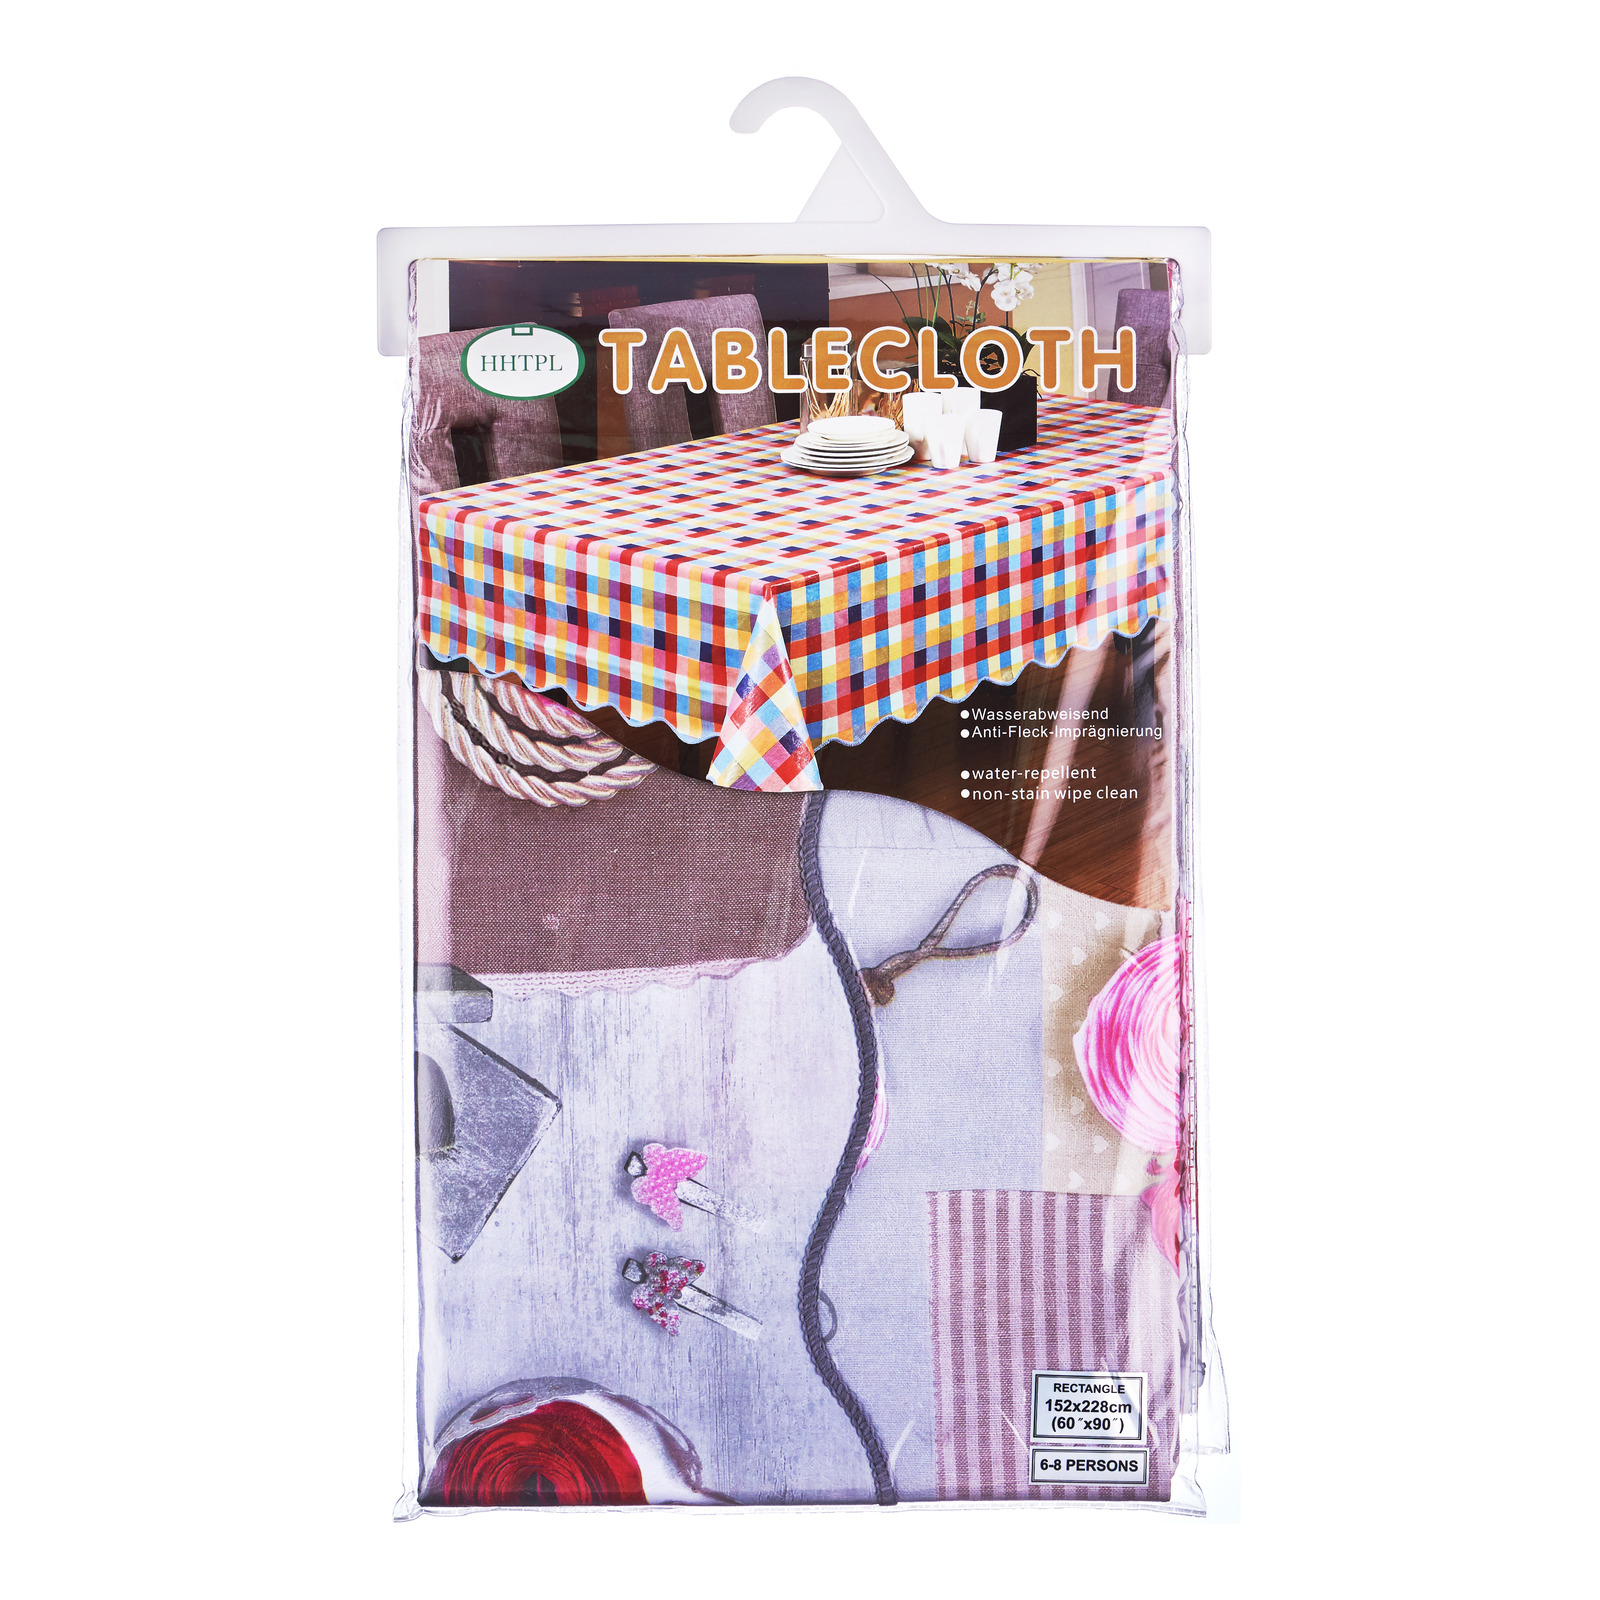 HHTPL Tablecloth - Rectangle